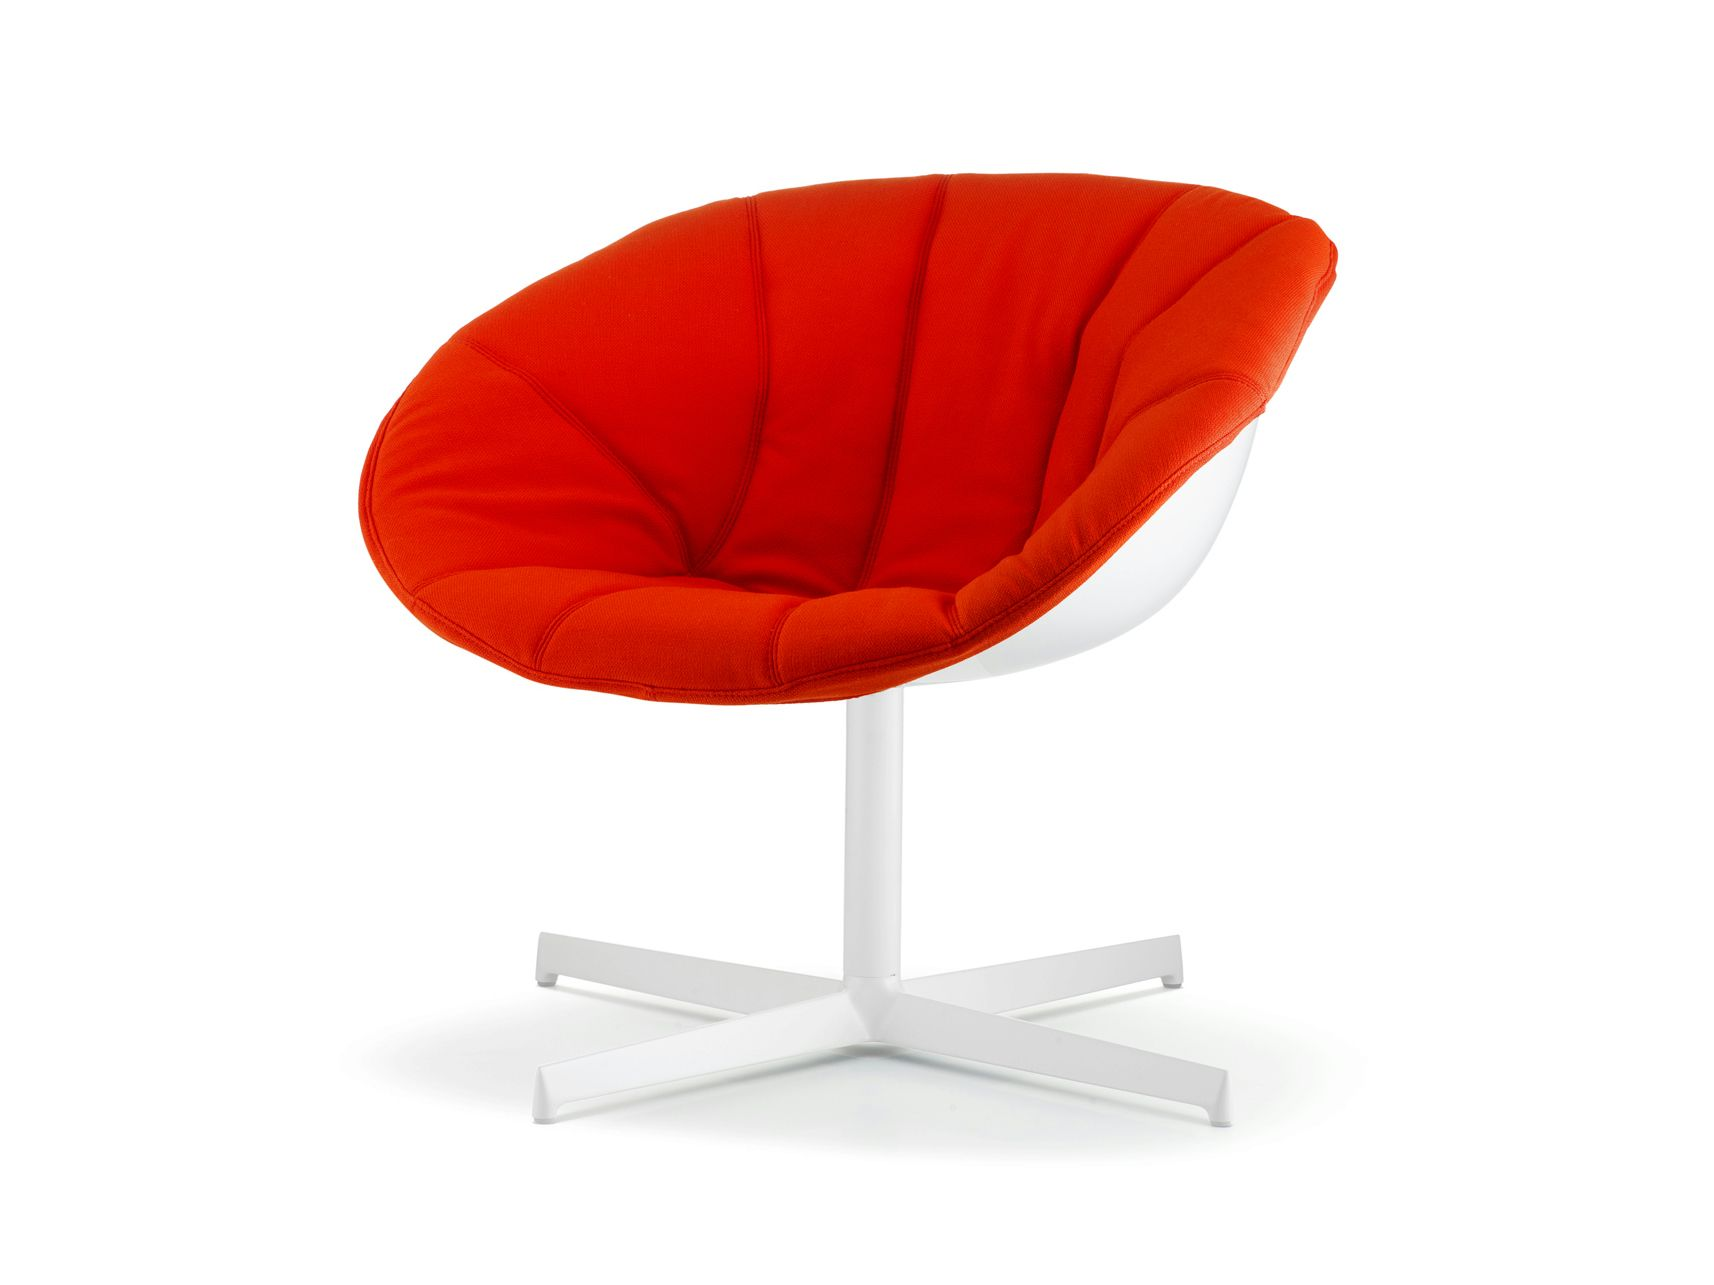 Technopolymer Easy Chair With 4 Spoke Base Gliss Lounge 340 3 Gliss Collection By Pedrali Design Claudio Dondoli Marco Pocci Chair Easy Chair Lounge